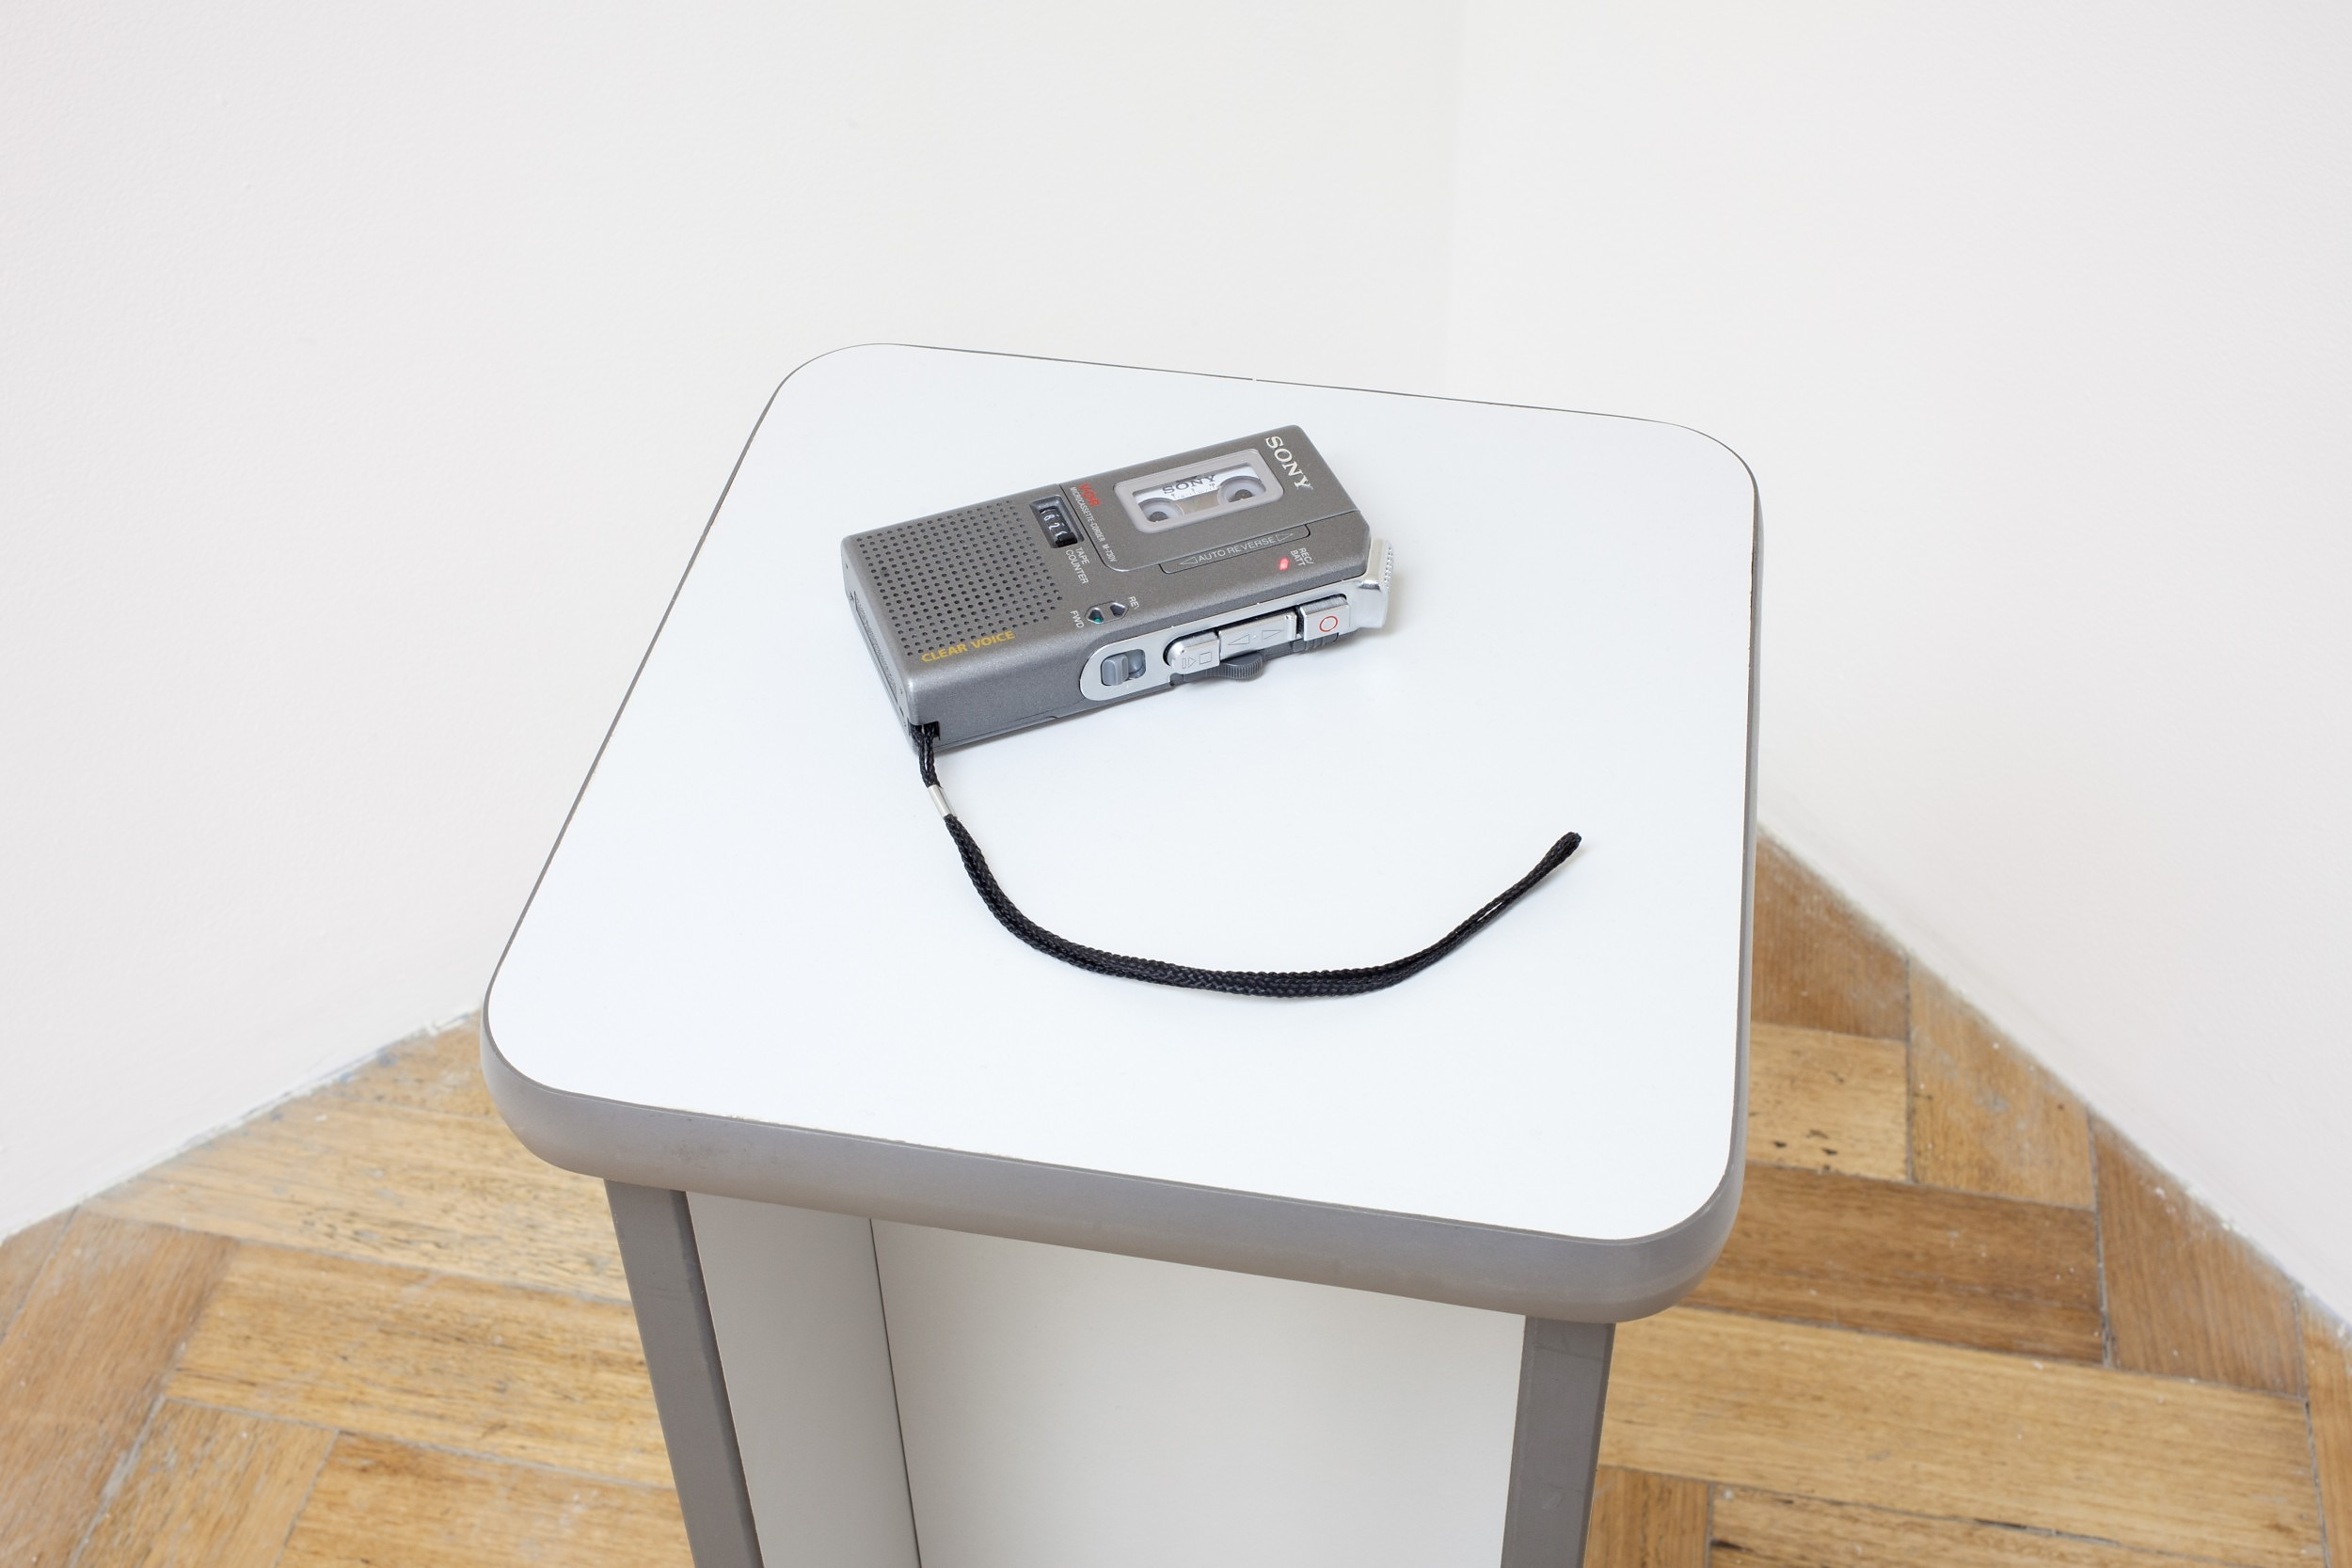 Steve Miller Reads Who Moved My Cheese?, 2013. Voice recording on microcassette, 46′25″, looped. Microcassette recorder on modified office desk, 74 x 25 x 25 cm Installation view, Having Cheese Makes You Happy, West Space, Melbourne, VIC, Australia, Jun-Jul 2014